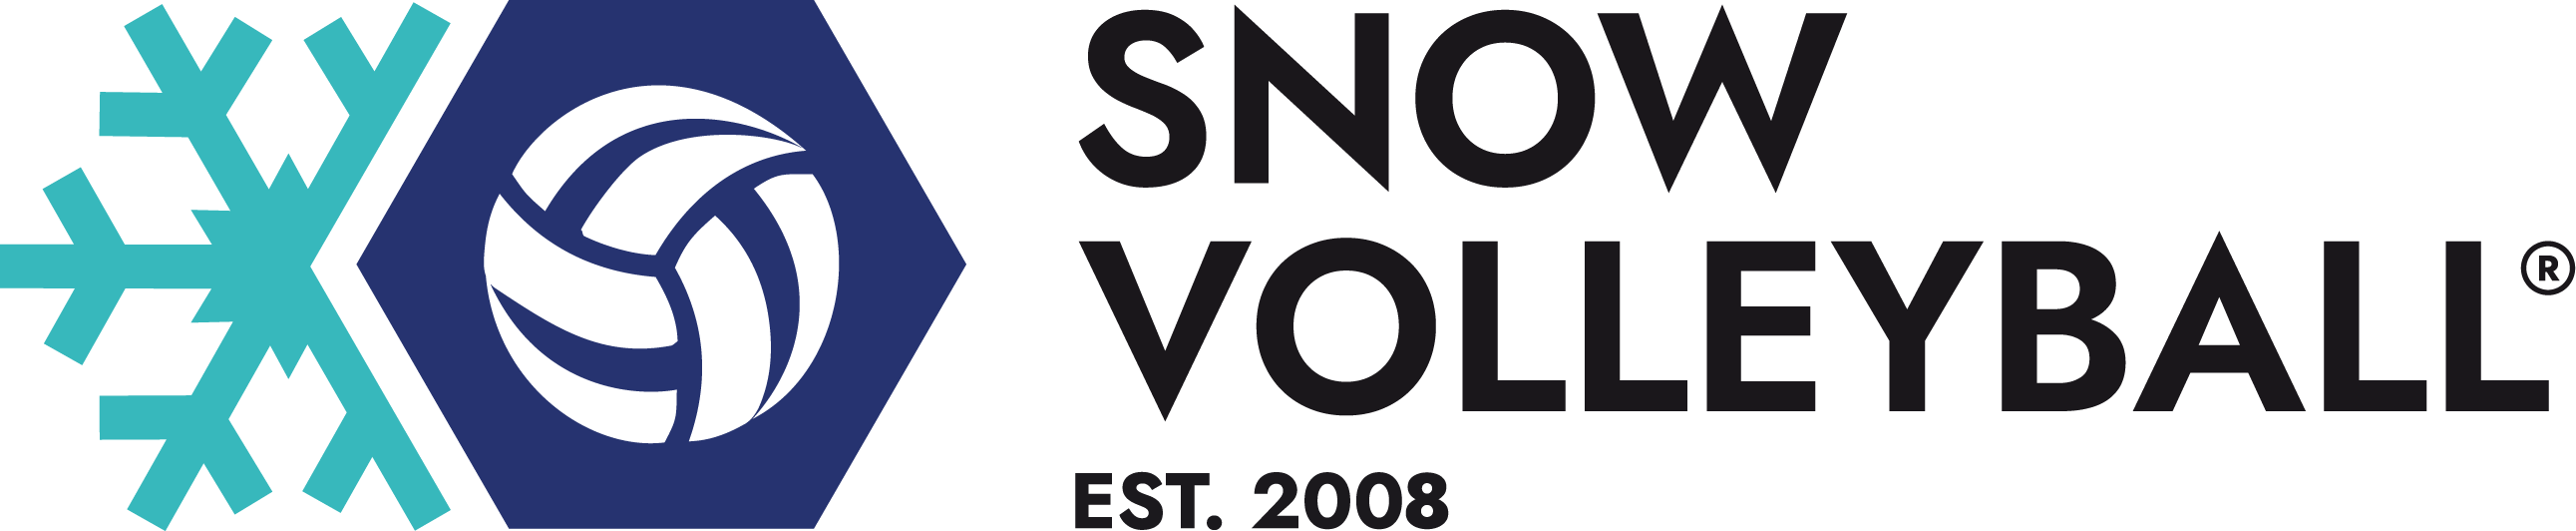 Snow Volleyball Shop